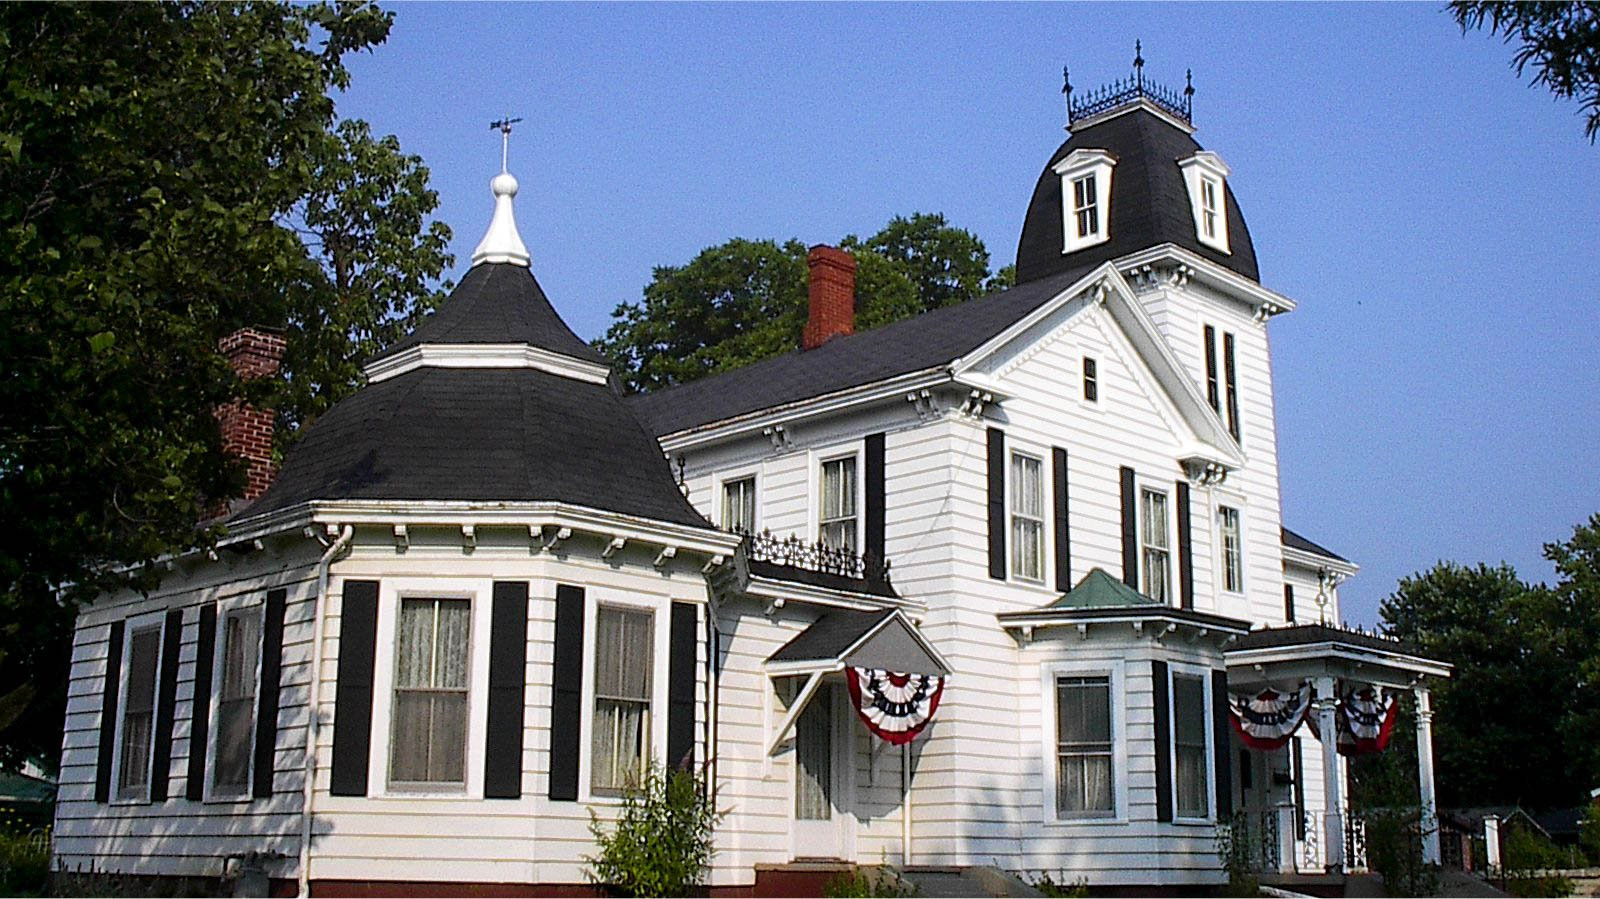 Jersey County Historical Museum